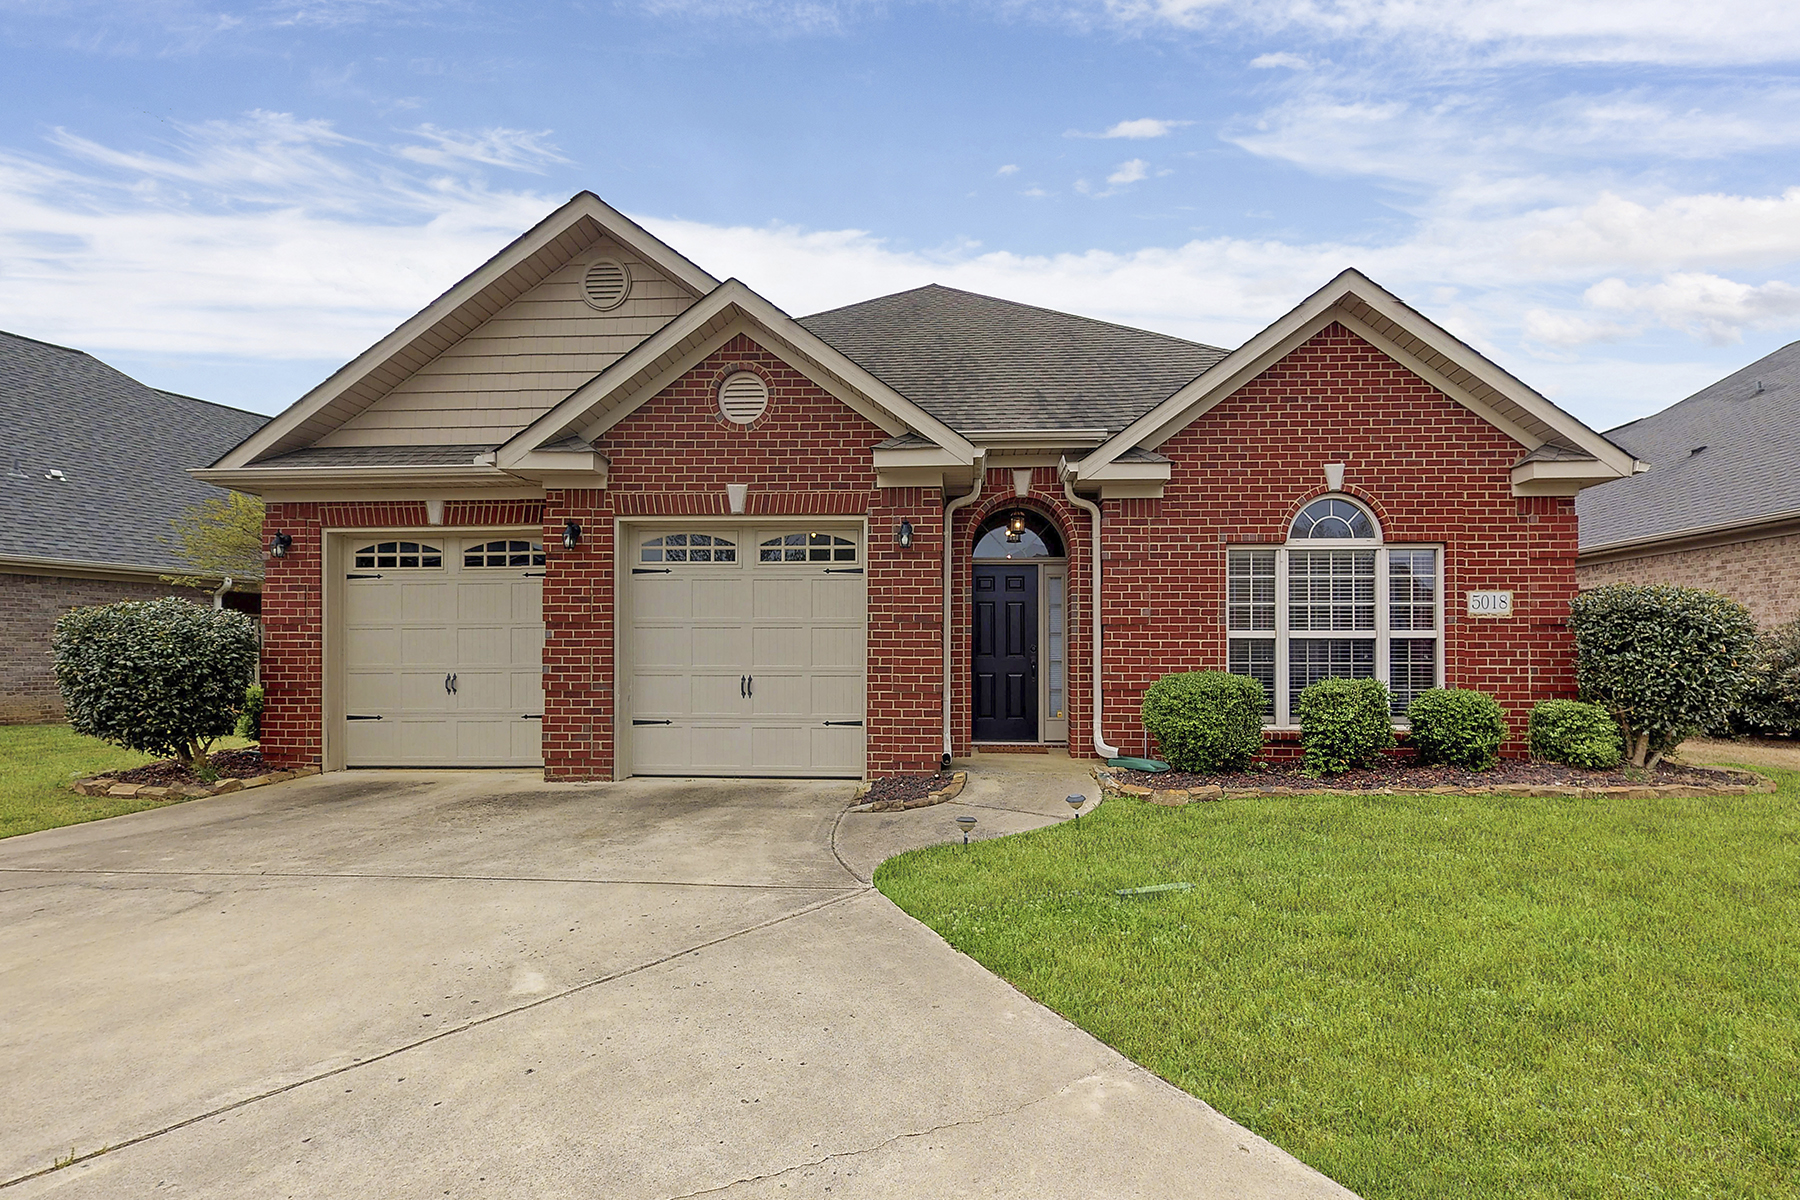 Single Family Home for Active at 5018 Valley Cove Drive Owens Cross Roads, Alabama 35763 United States